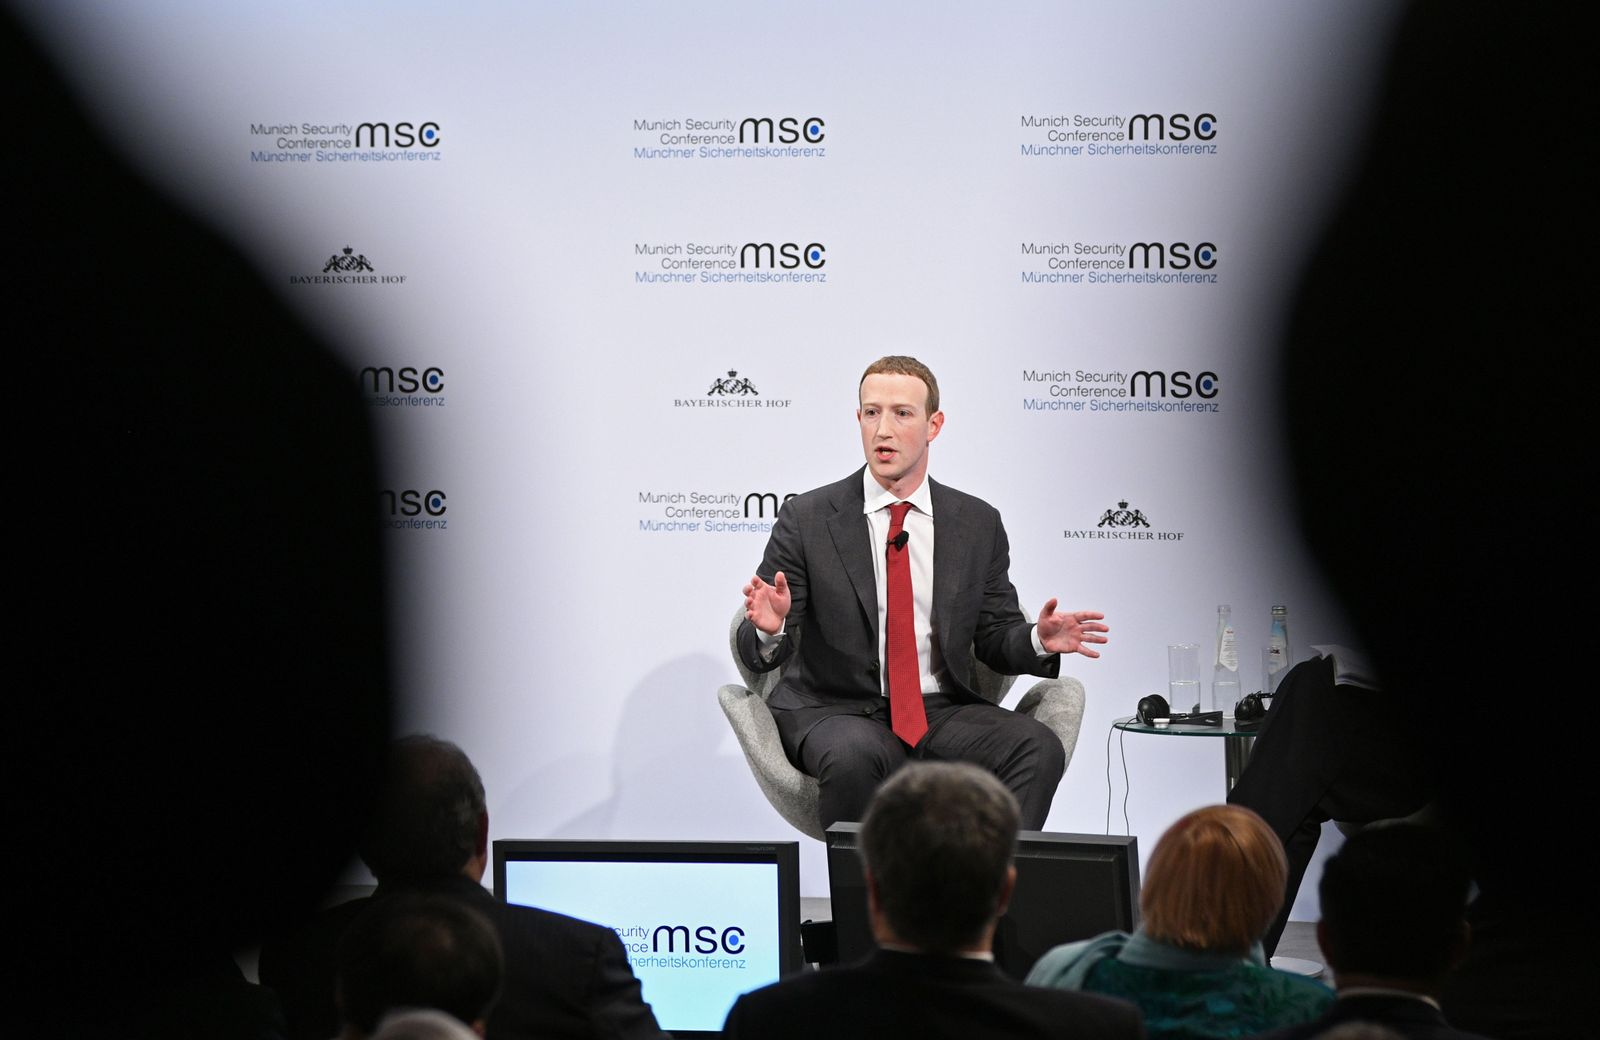 Munich Security Conference 2020, Germany - 15 Feb 2020